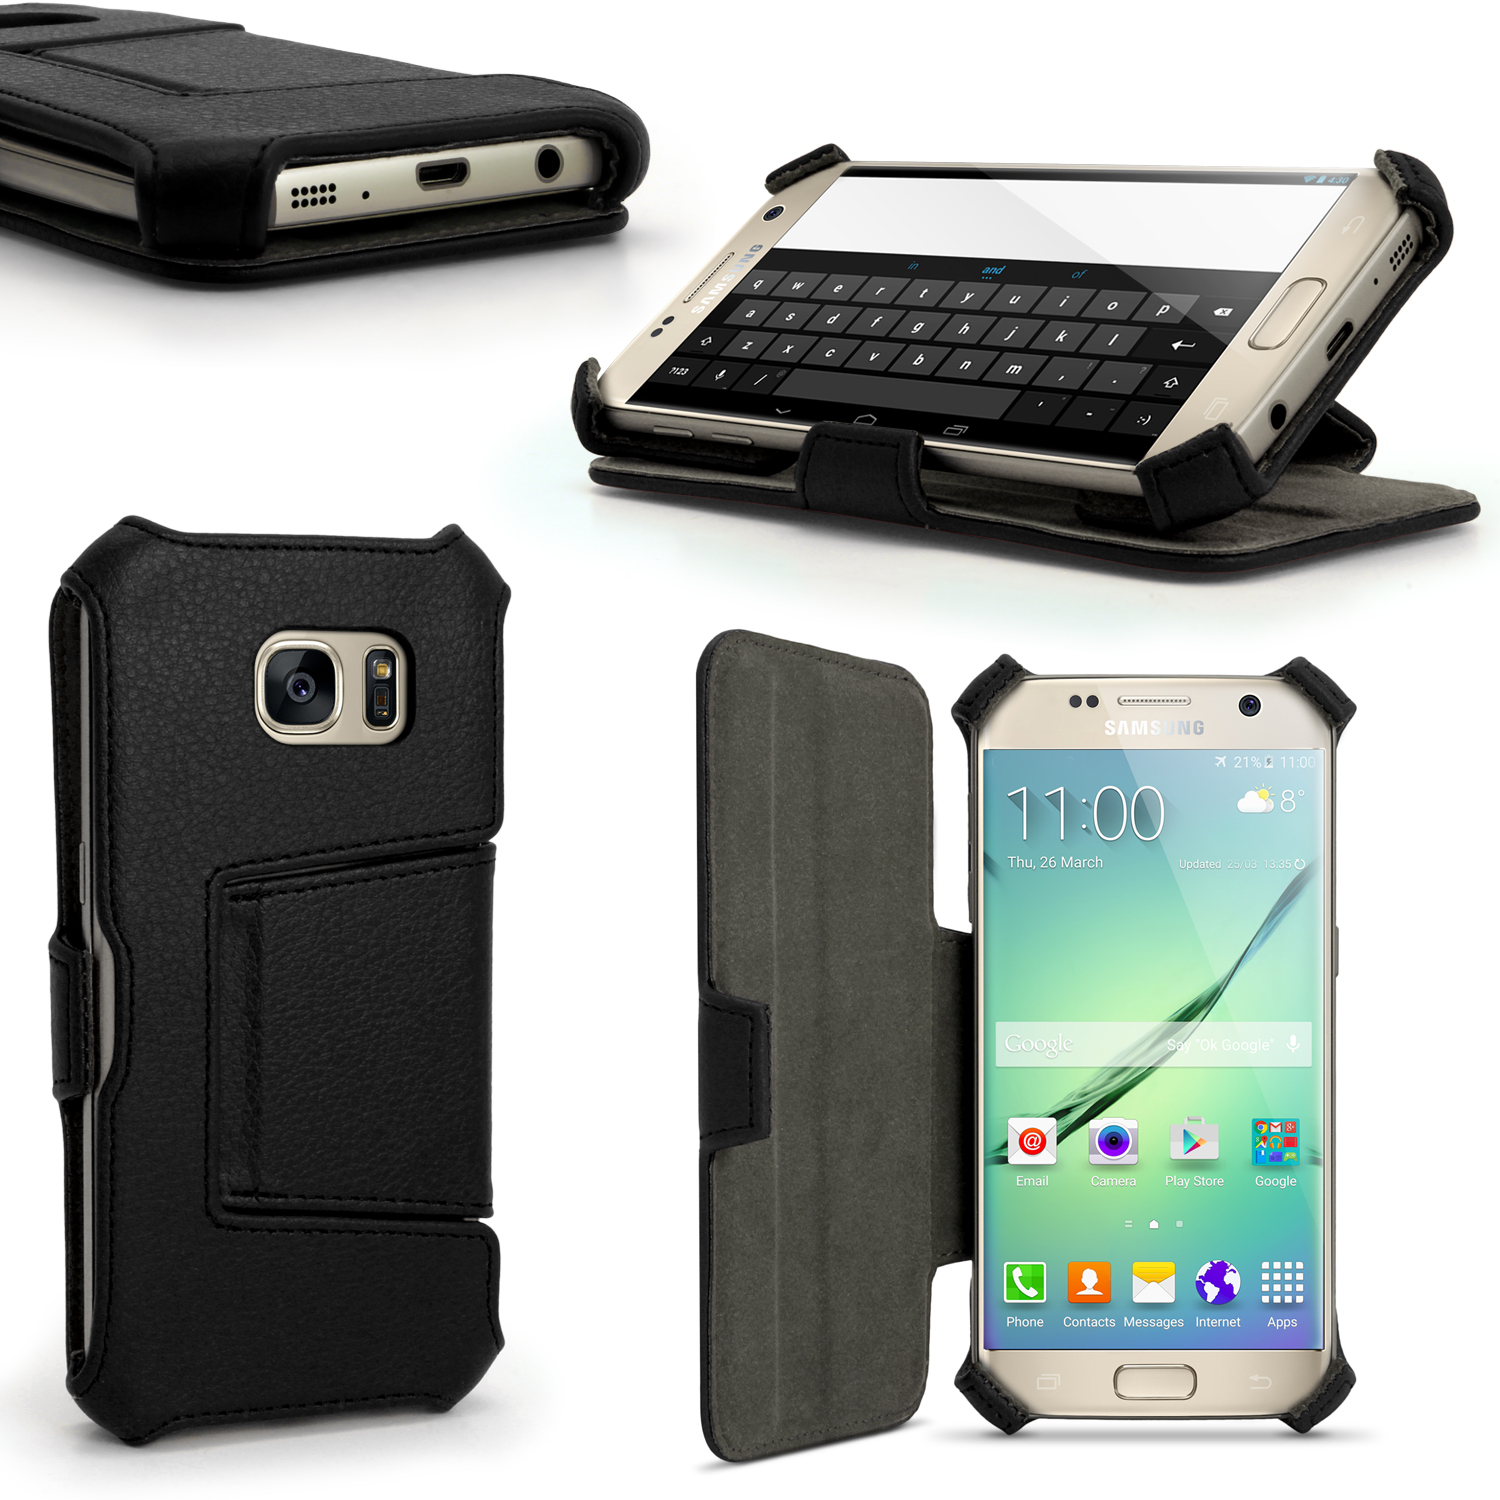 iGadgitz Premium Folio Black PU Leather Case Cover for Samsung Galaxy S7 SM-G930 with Stand + Screen Protector